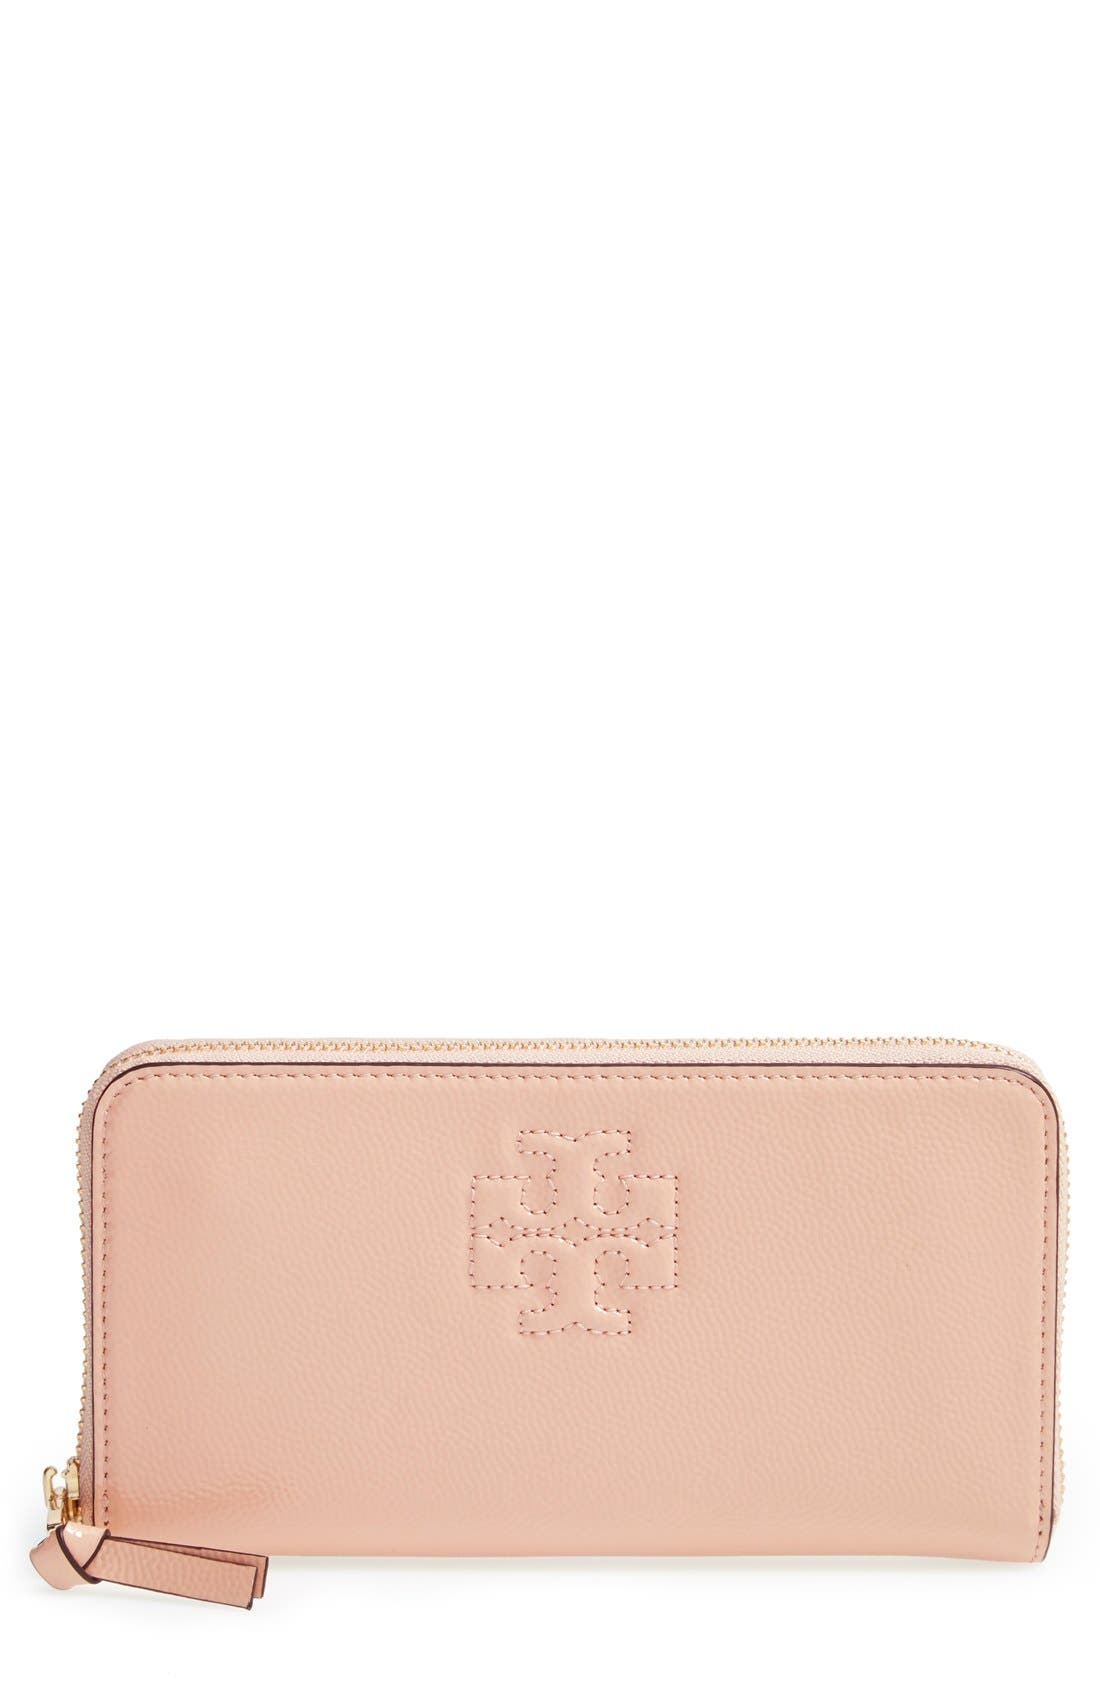 Main Image - Tory Burch 'Thea' Leather Zip Around Wallet